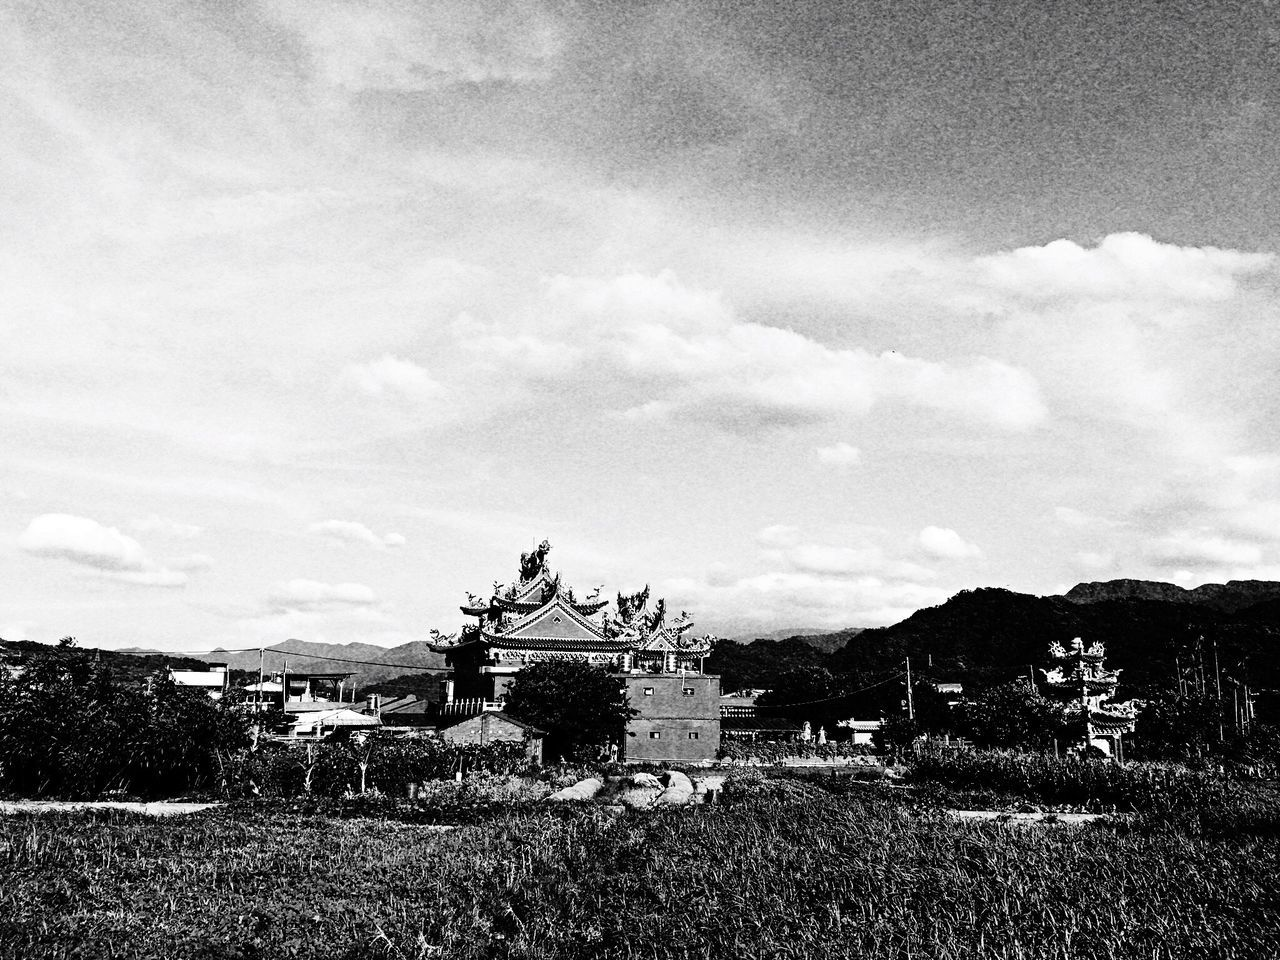 Temple 。 EyeEm Gallery EyeEm Best Shots - Black + White 2016 EyeEm Awards Everything In Its Place How Do We Build The World? TOWNSCAPE EyeEmBestPics Temple Taking Photos The Tourist Clouds And Sky Tree Sanxia